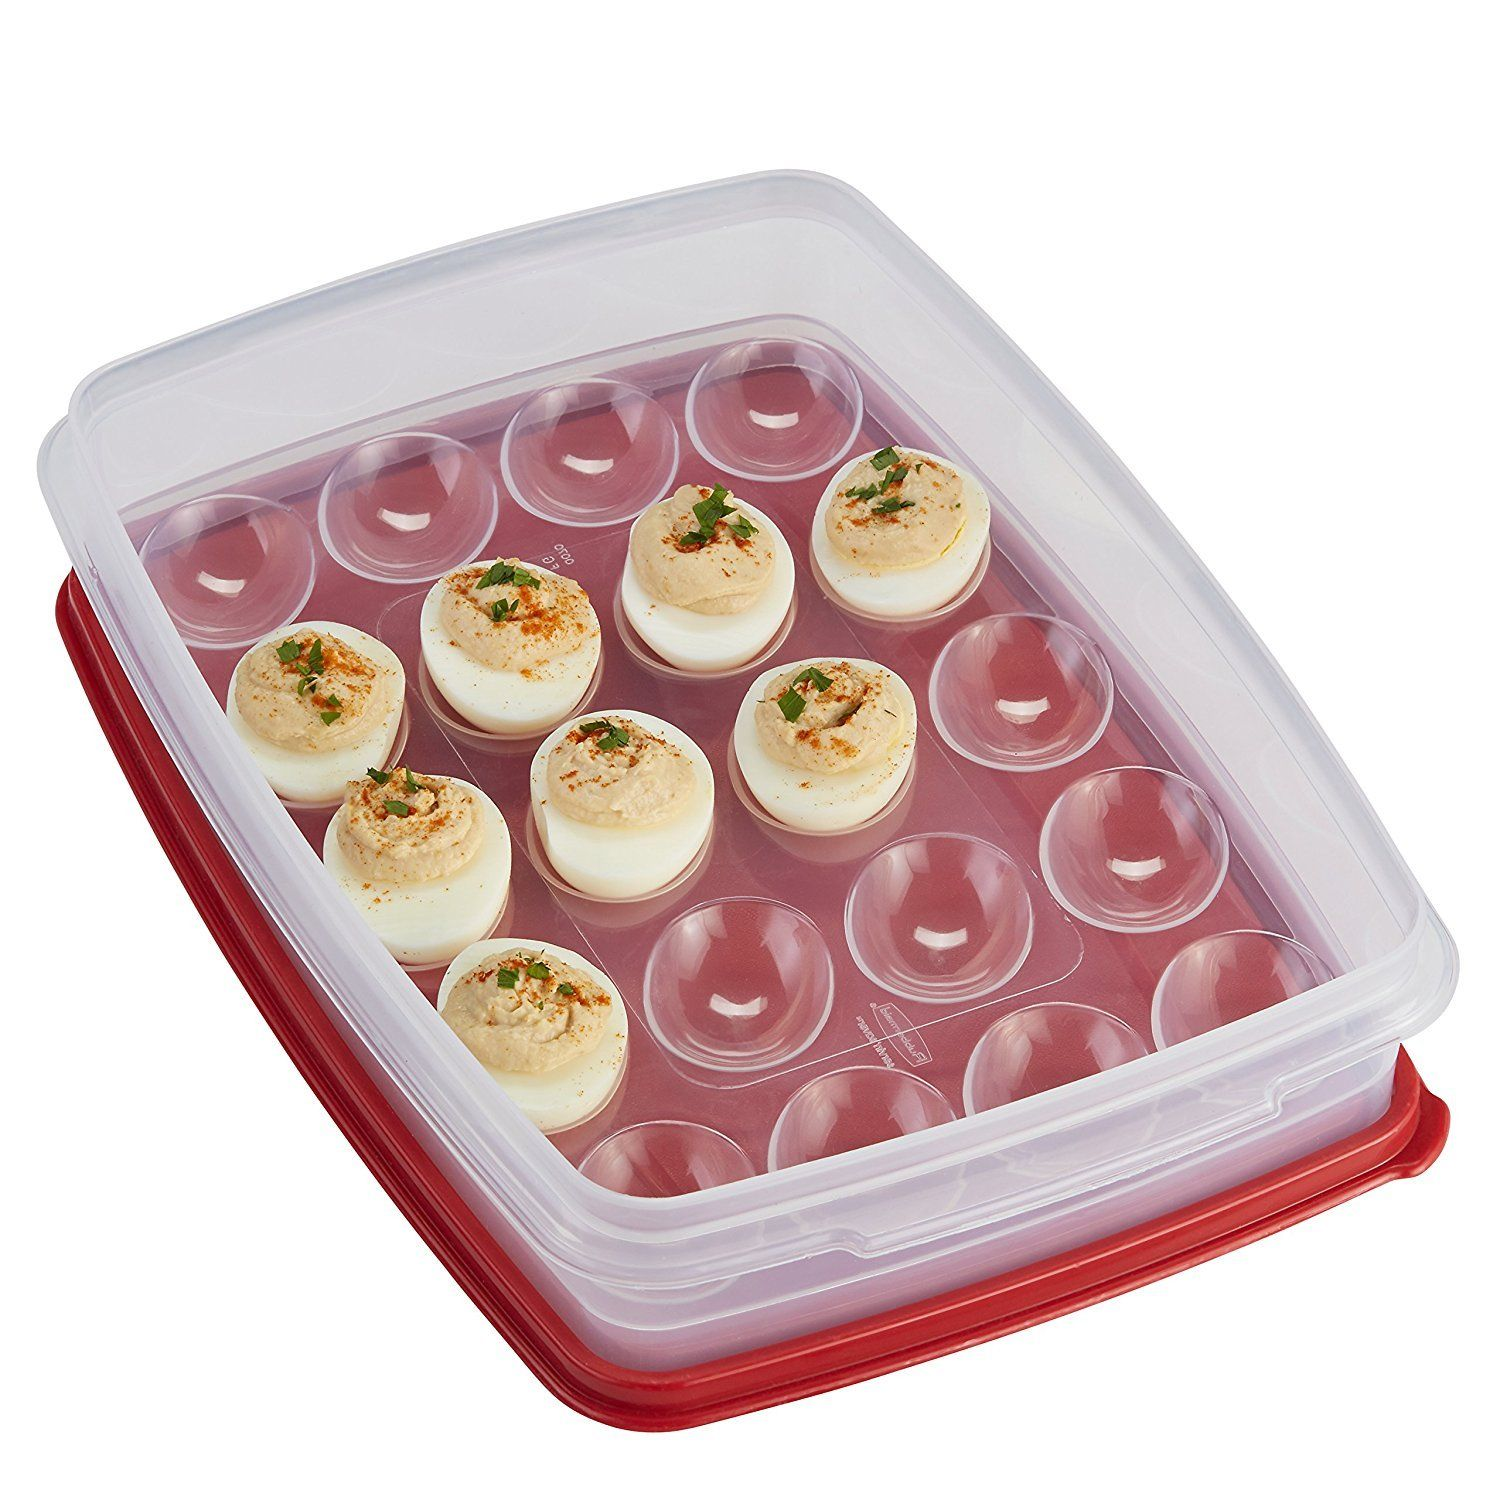 Rubbermaid Deviled Egg Keeper Tray - Food Storage Container, Red. Holds 20 Eggs! 1